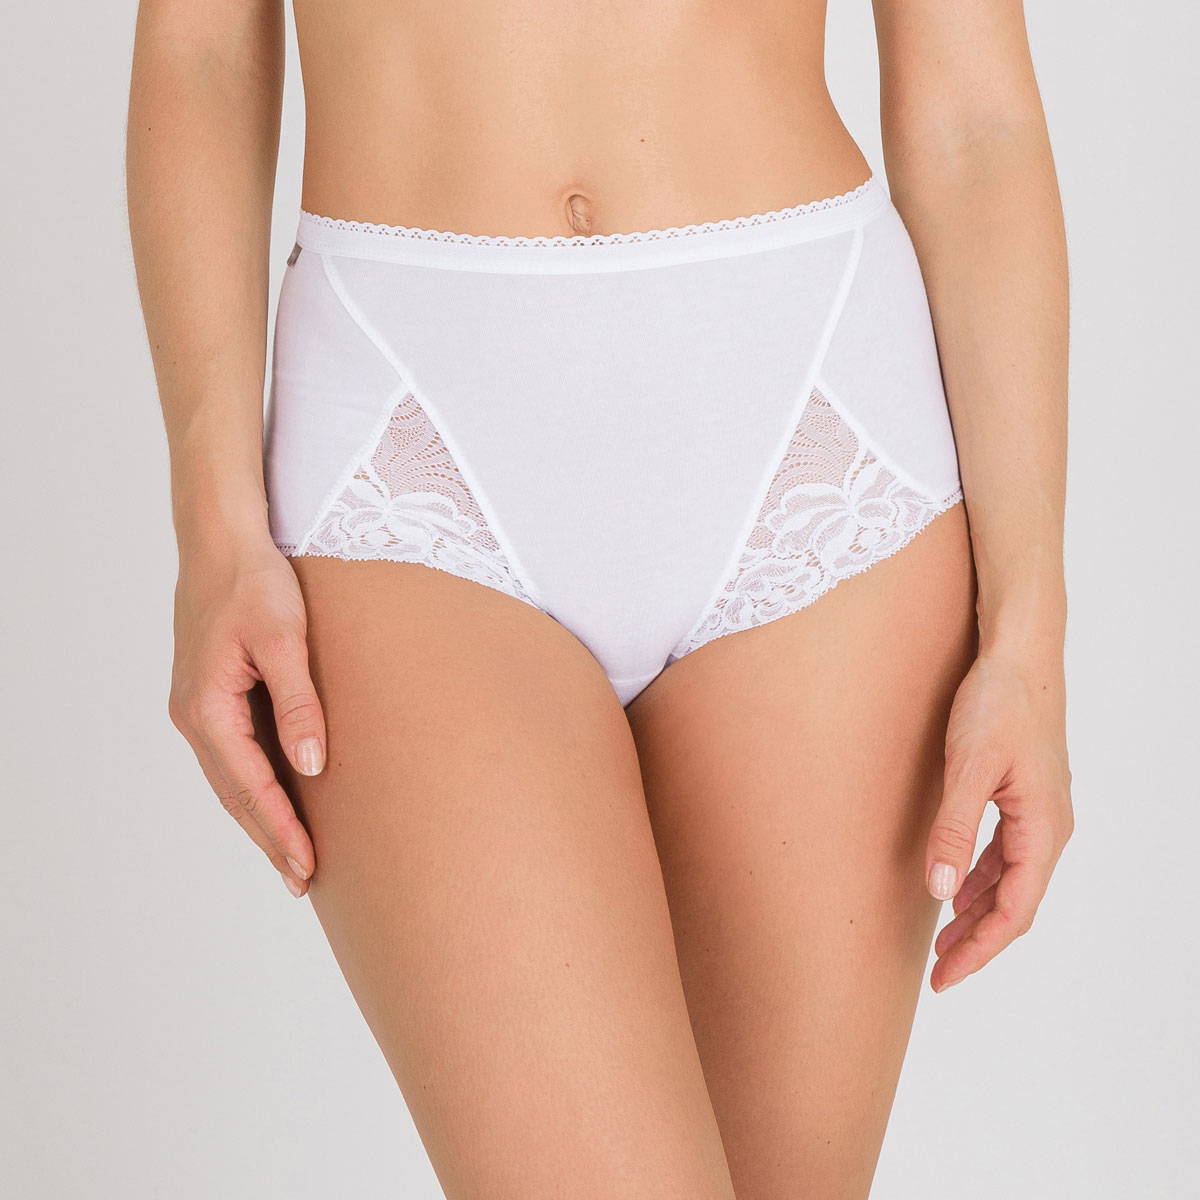 3 Maxi Briefs  in White – Cotton & Lace-PLAYTEX